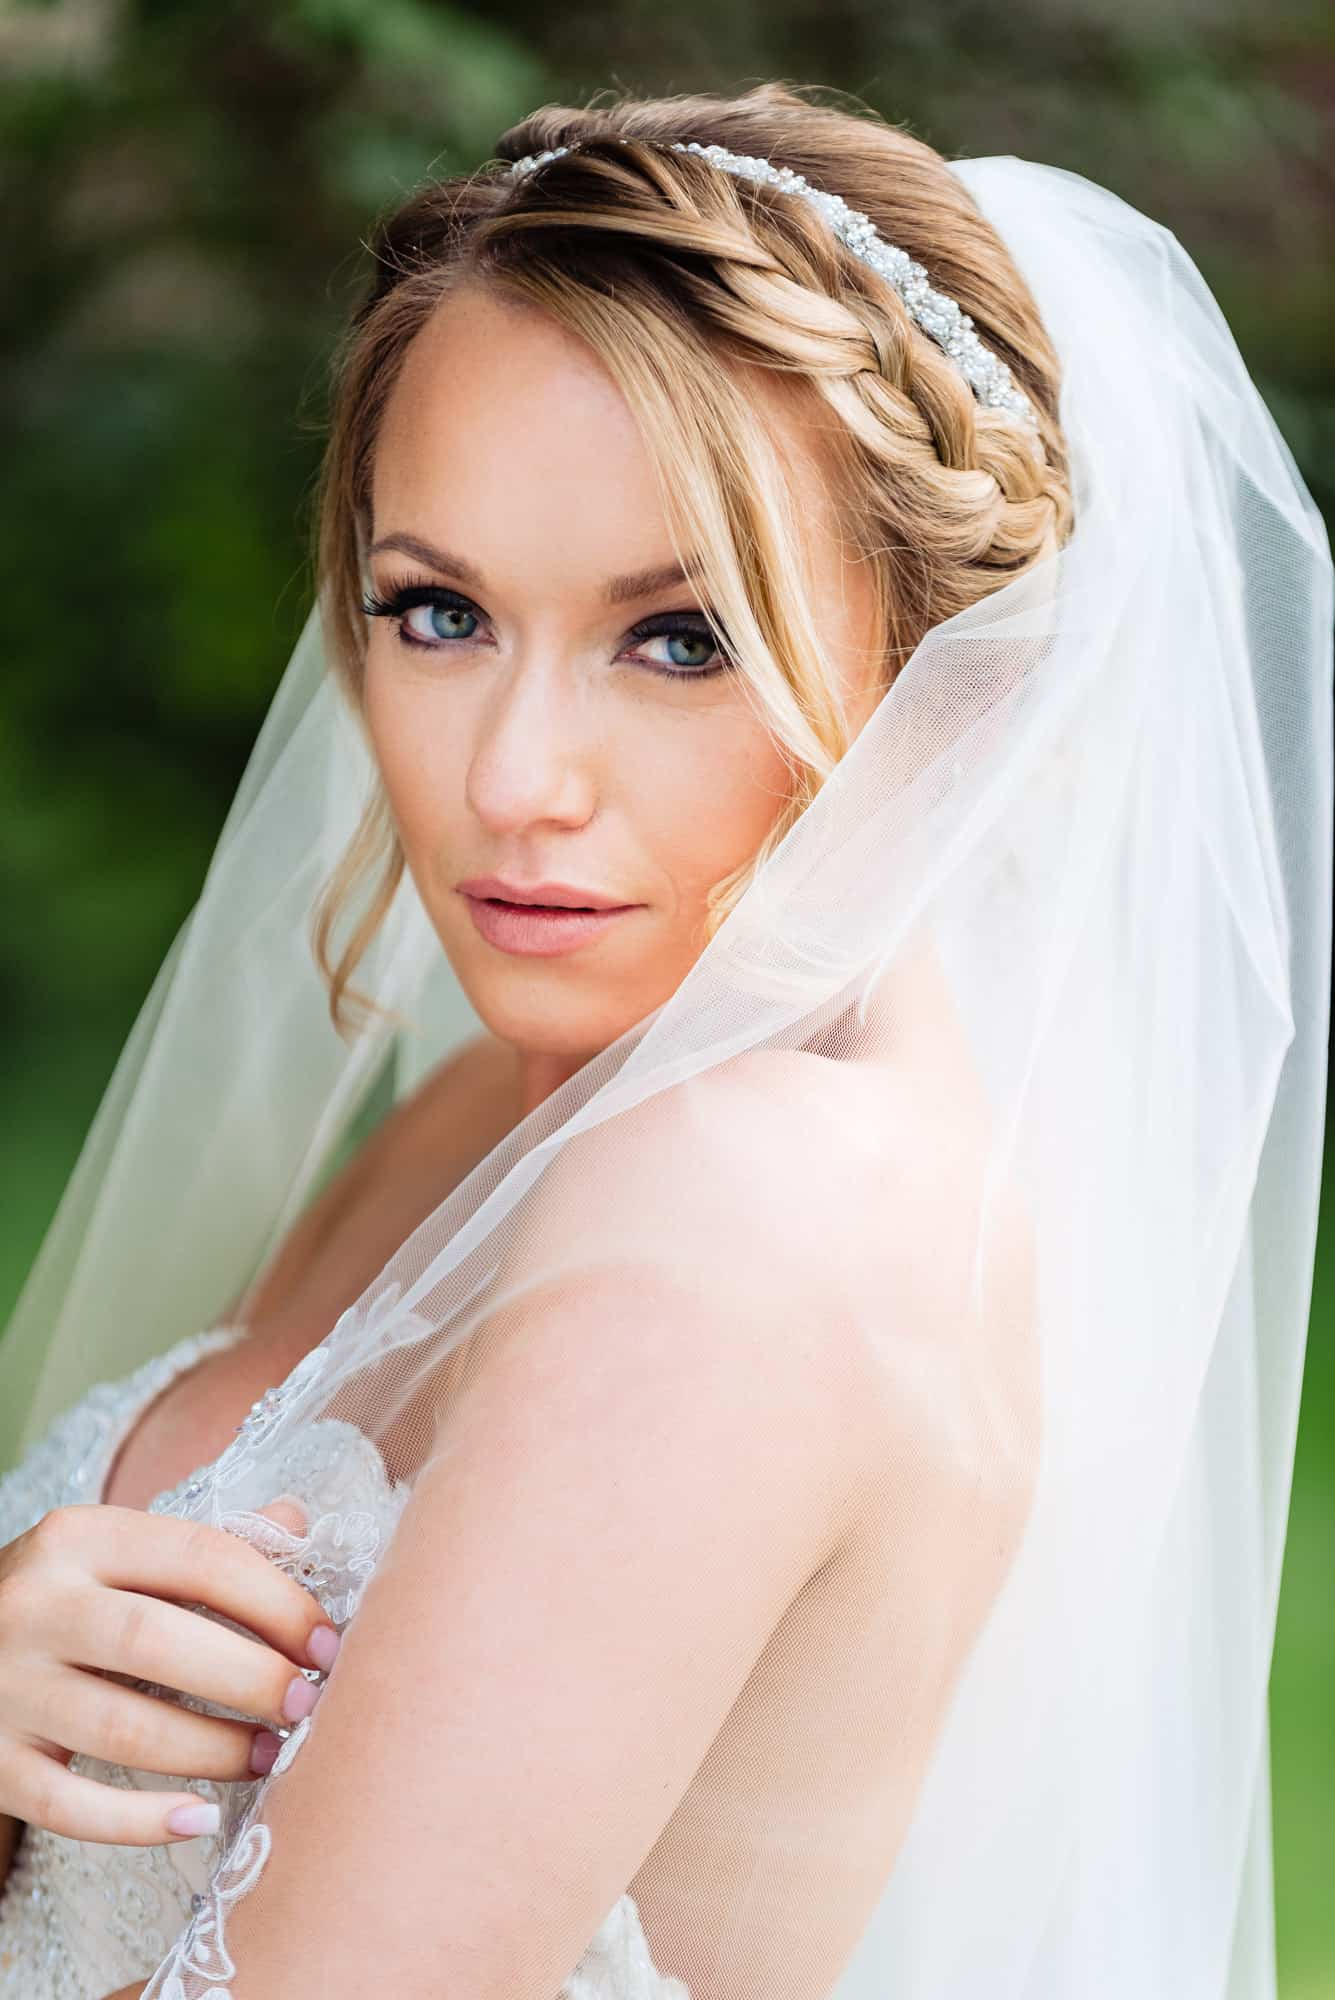 bridal photos, closeup of bride looking into camera covering up with veil